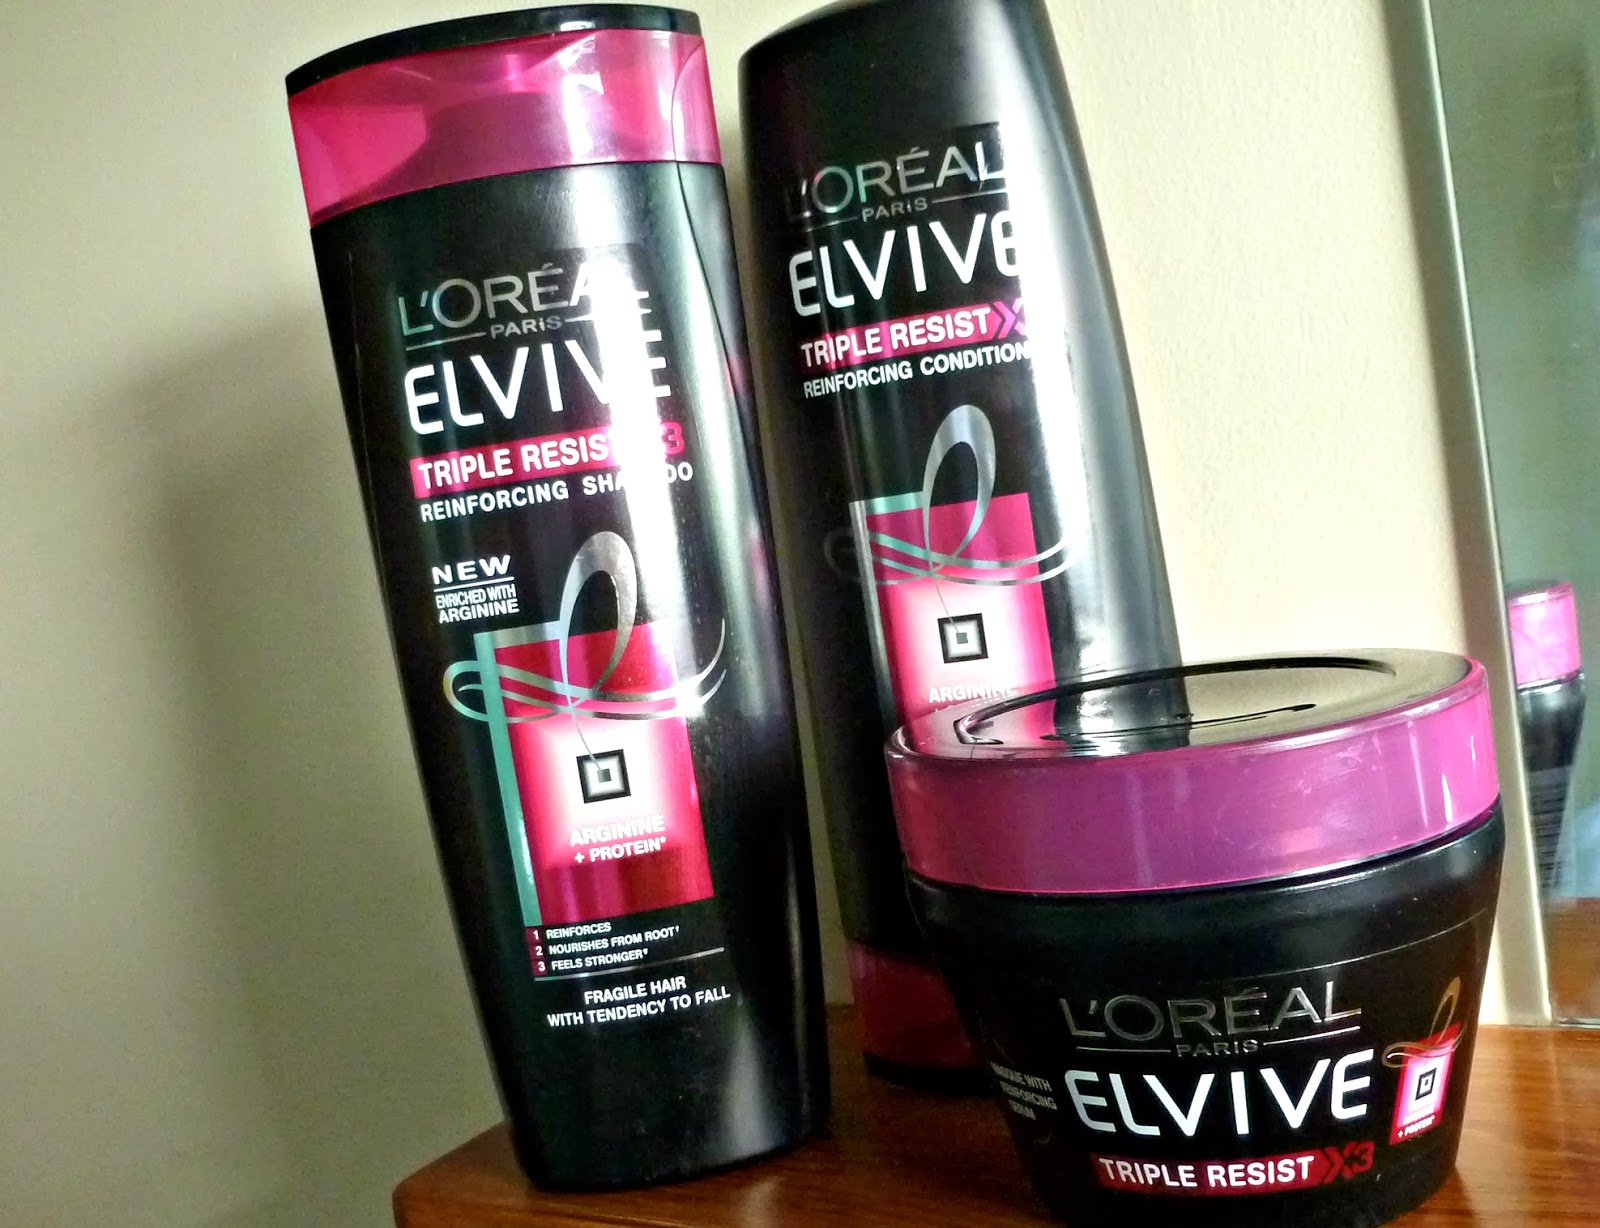 A picture of L'Oreal Elvive Triple Resist